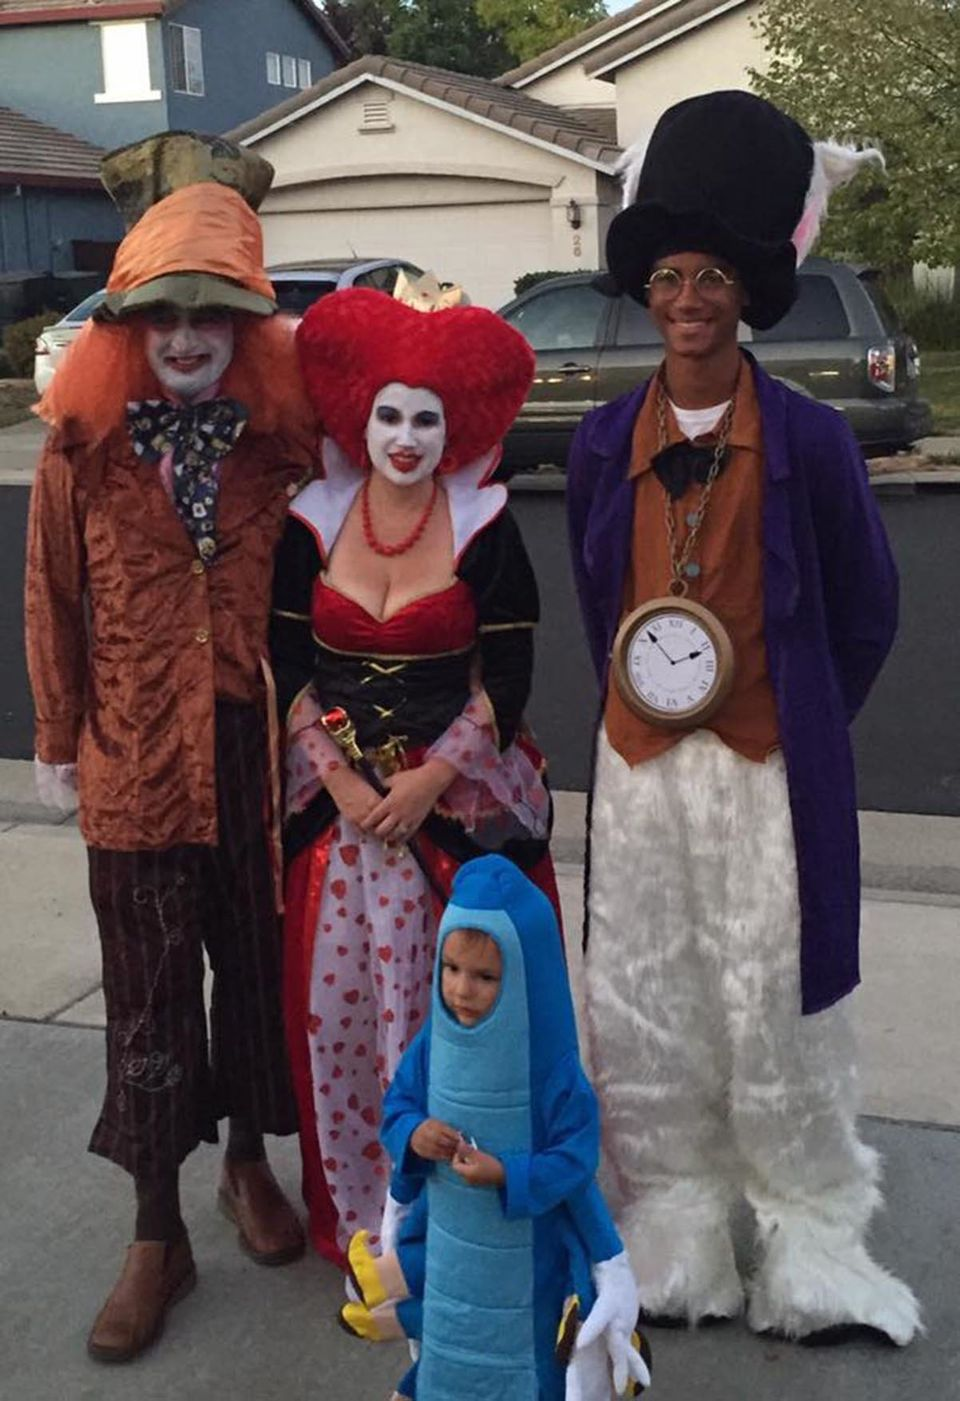 Trio Halloween Costume Ideas 2019.59 Family Halloween Costumes That Are Clever Cool And Extra Cute